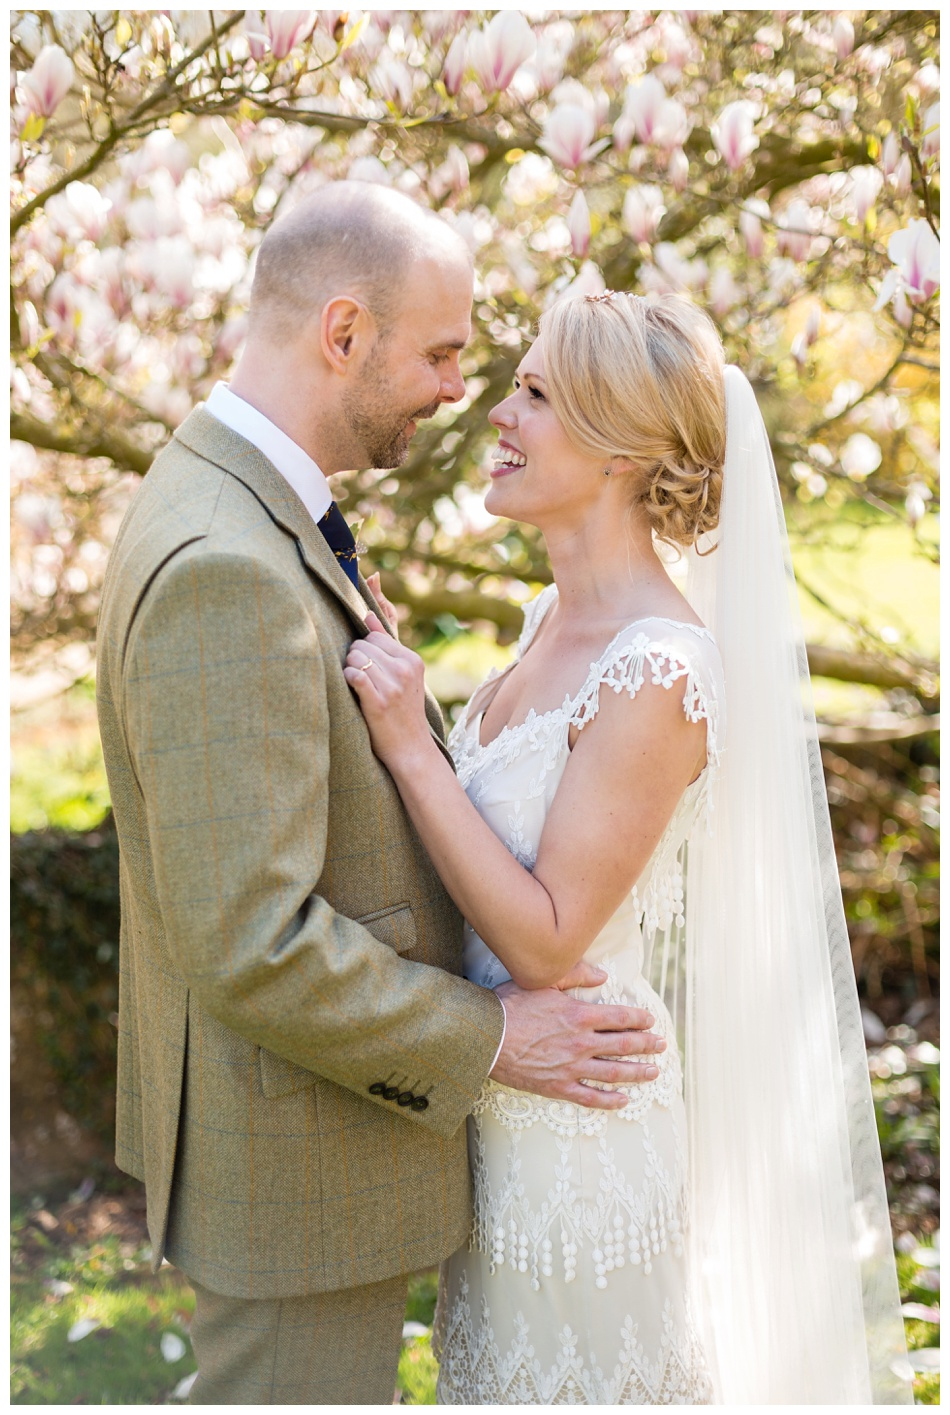 Spring wedding at Ettington Park